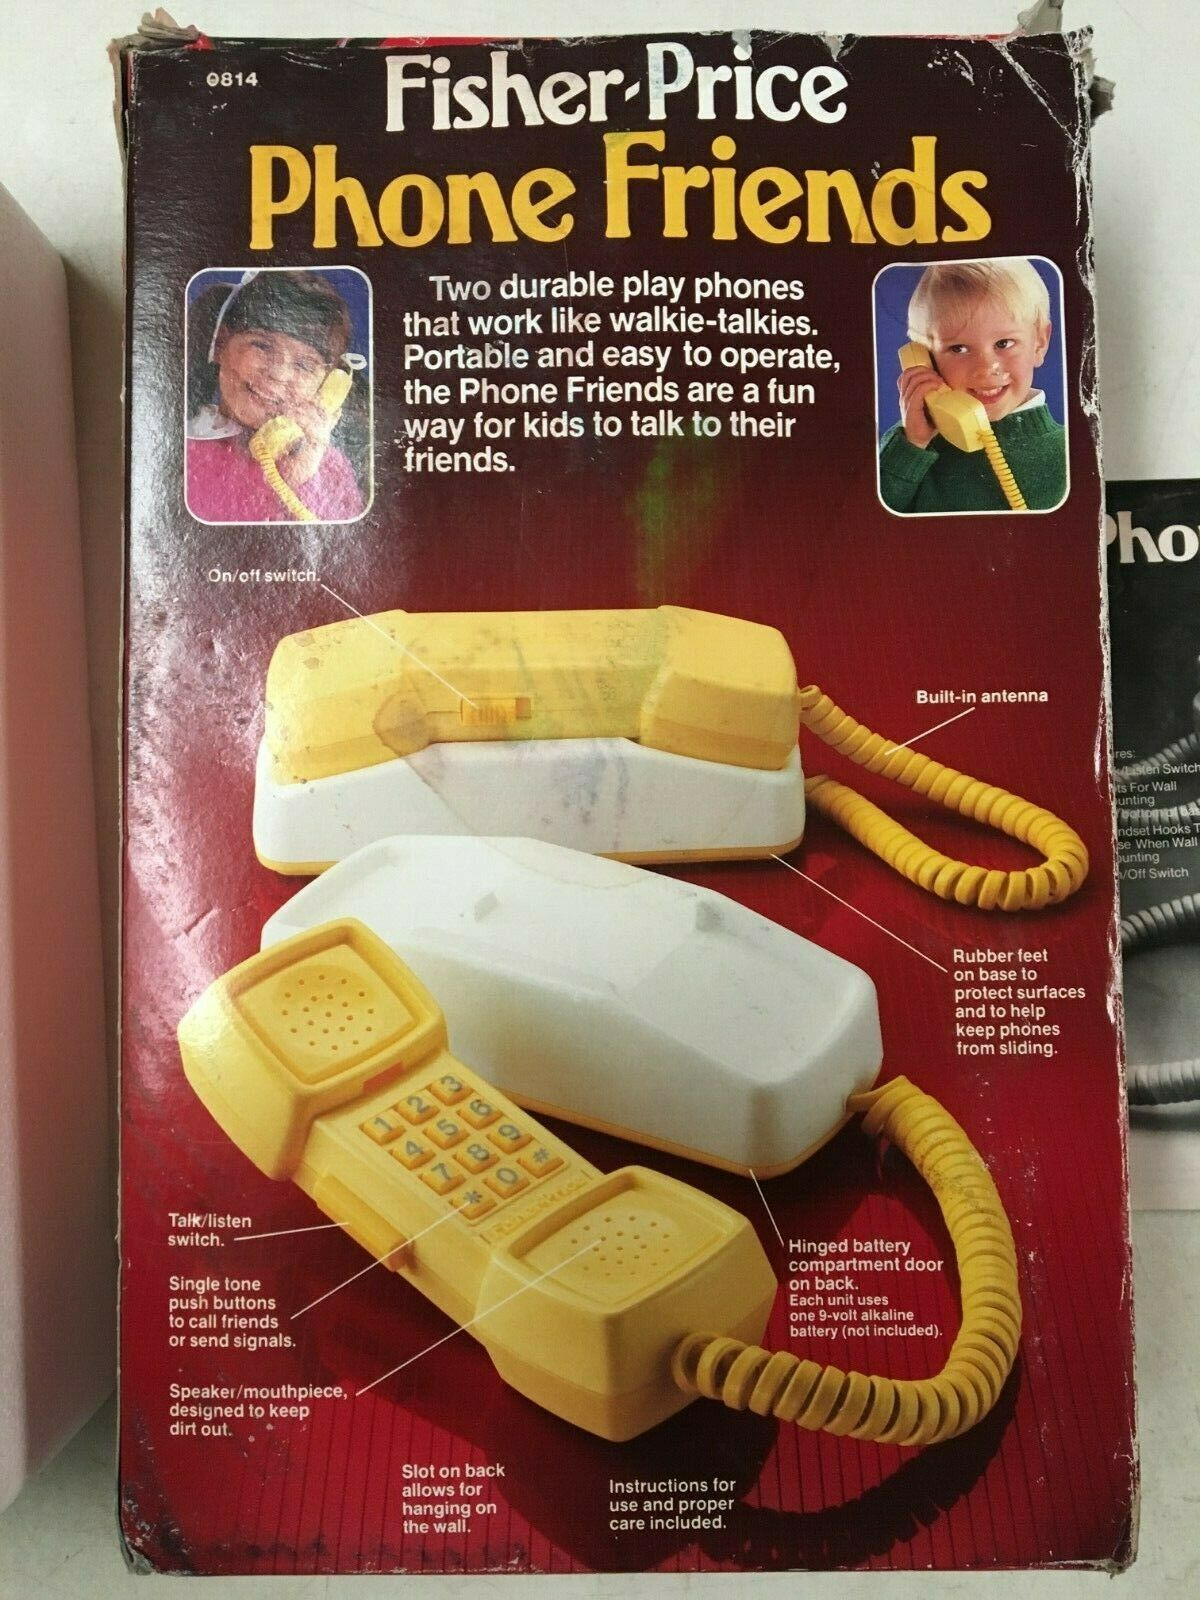 NIB FISHER PRICE VINTAGE PHONE FRIENDS WALKIE TALKIES PLAY PHONES 1984  0814